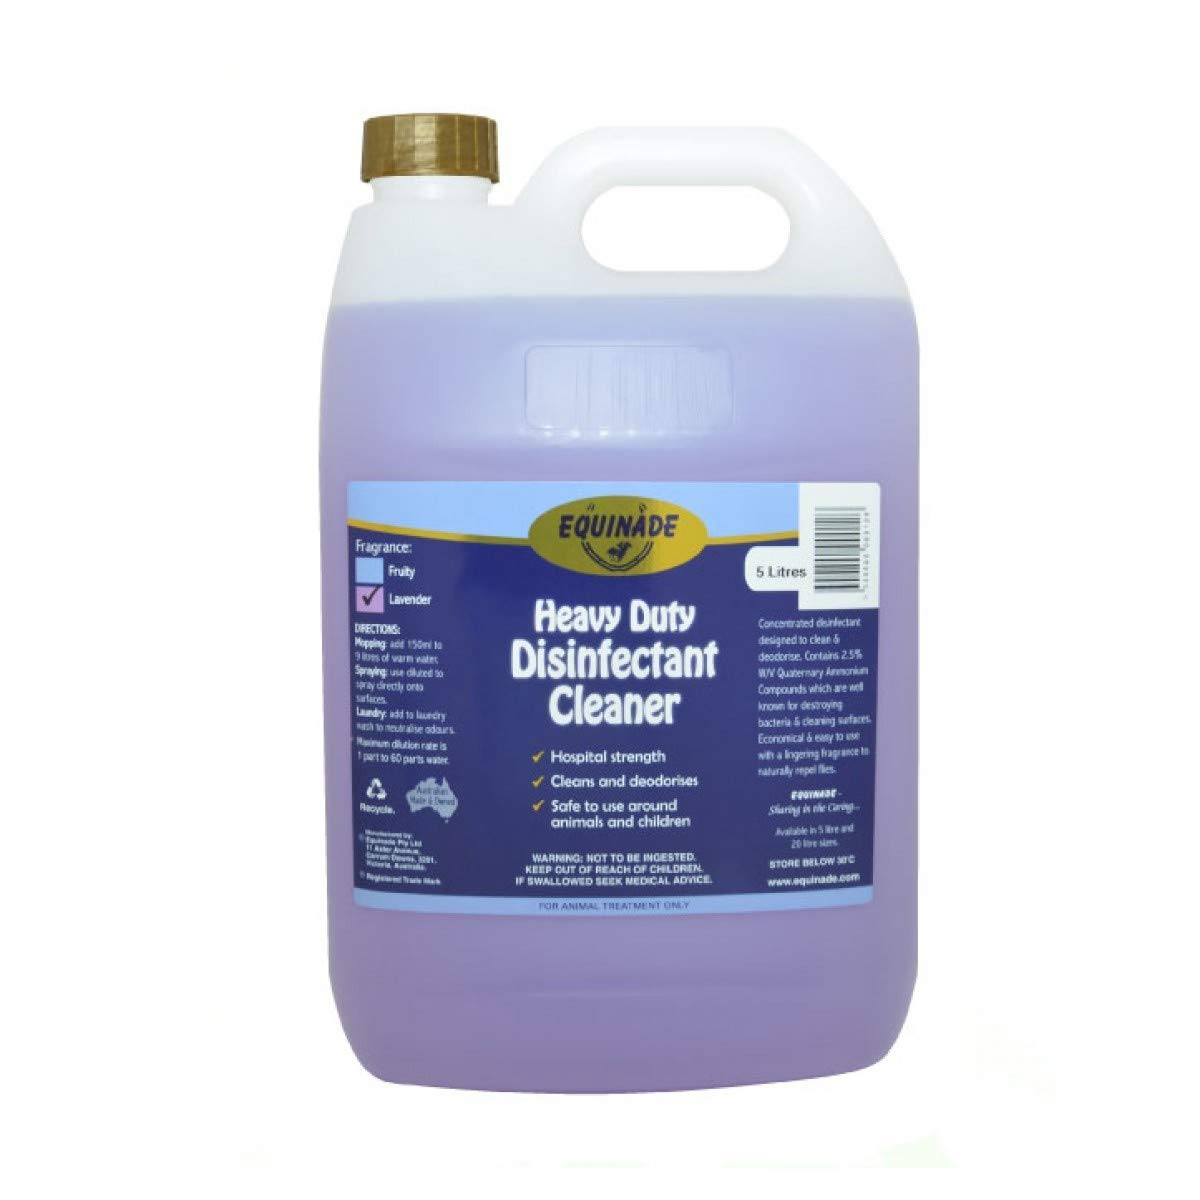 EQUINADE Heavy Duty Disinfectant Cleaner Lavender 20L SPEC ORD (XEHDDL20)